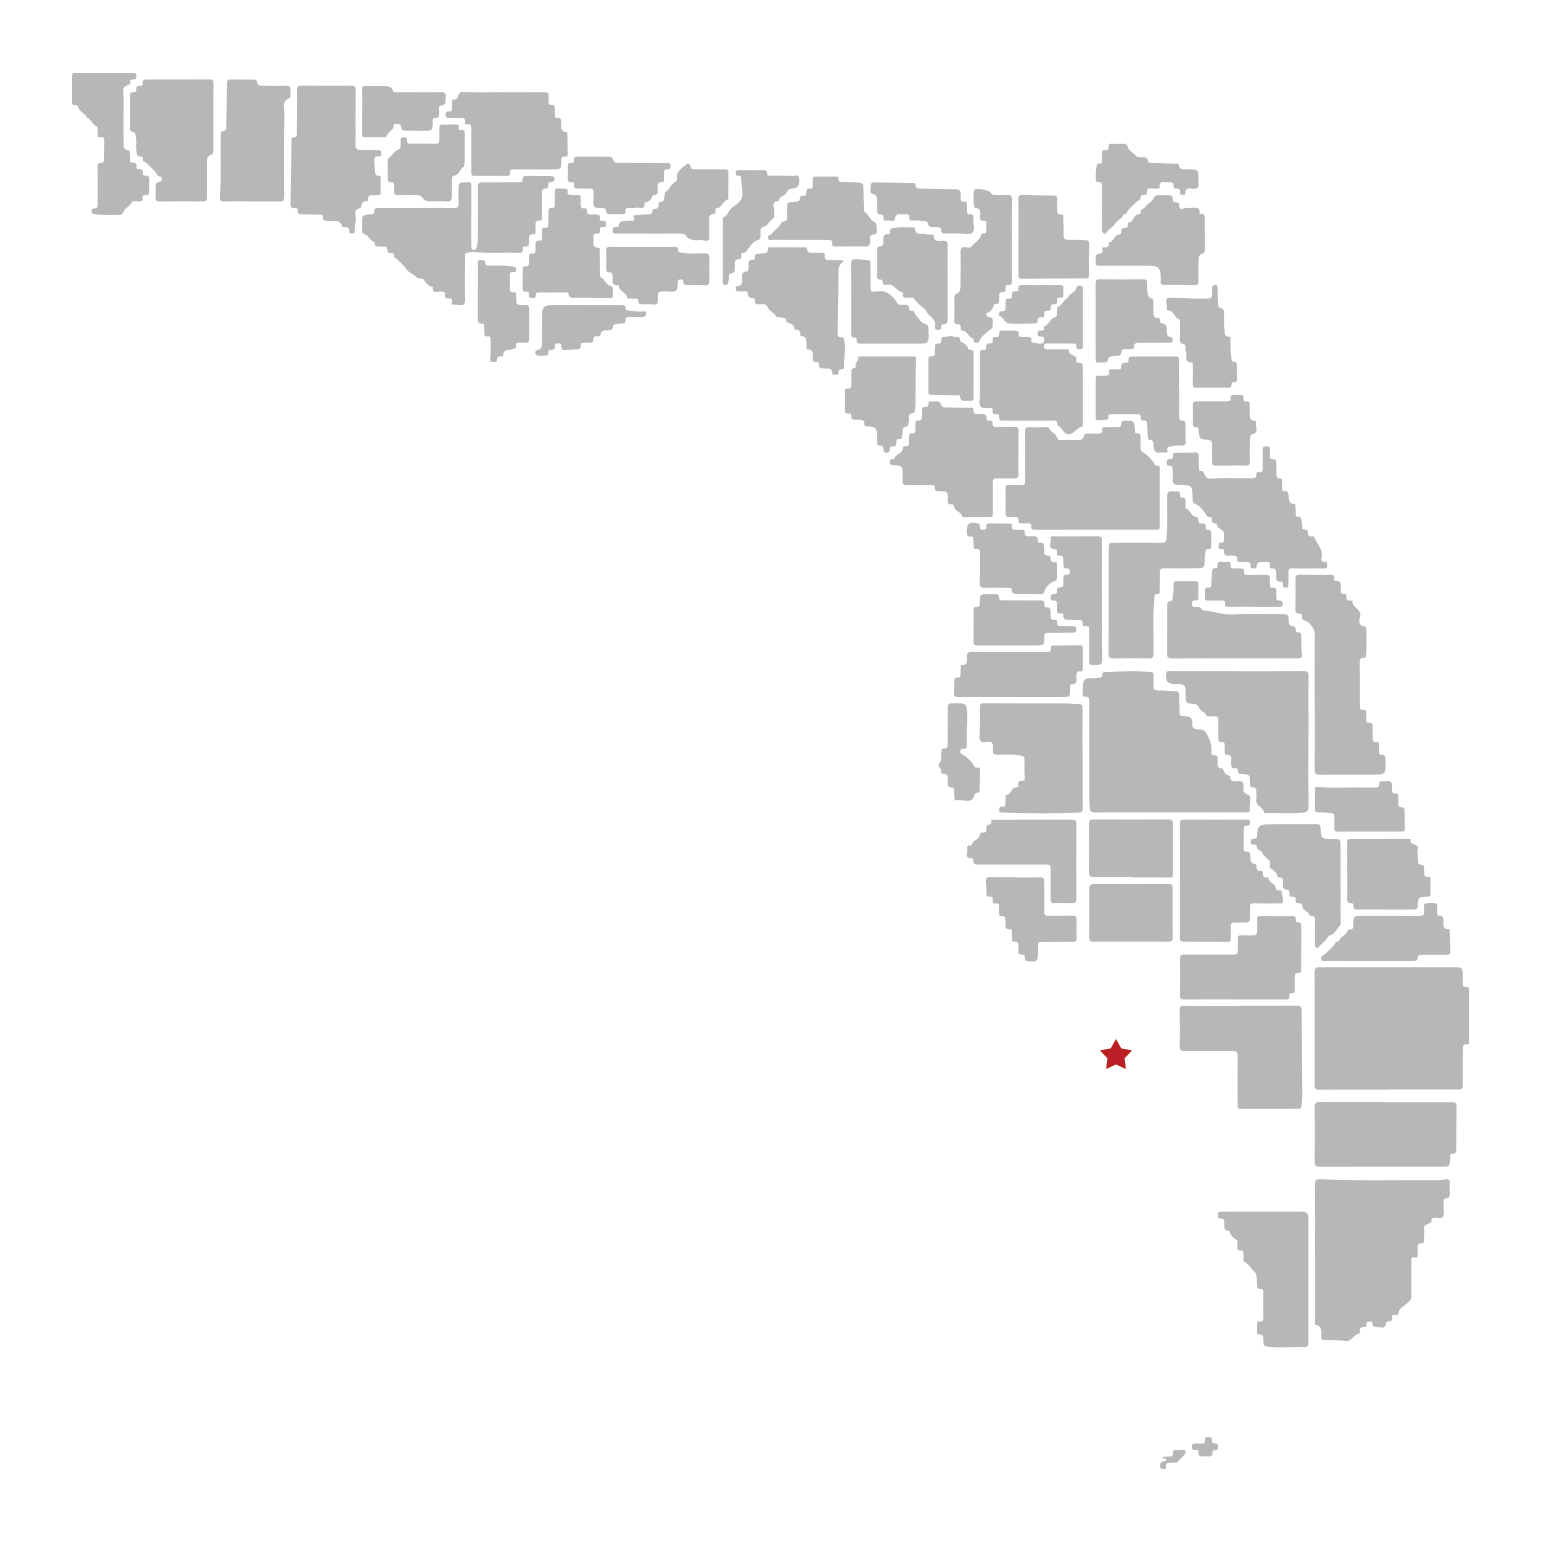 Lee and Collier County